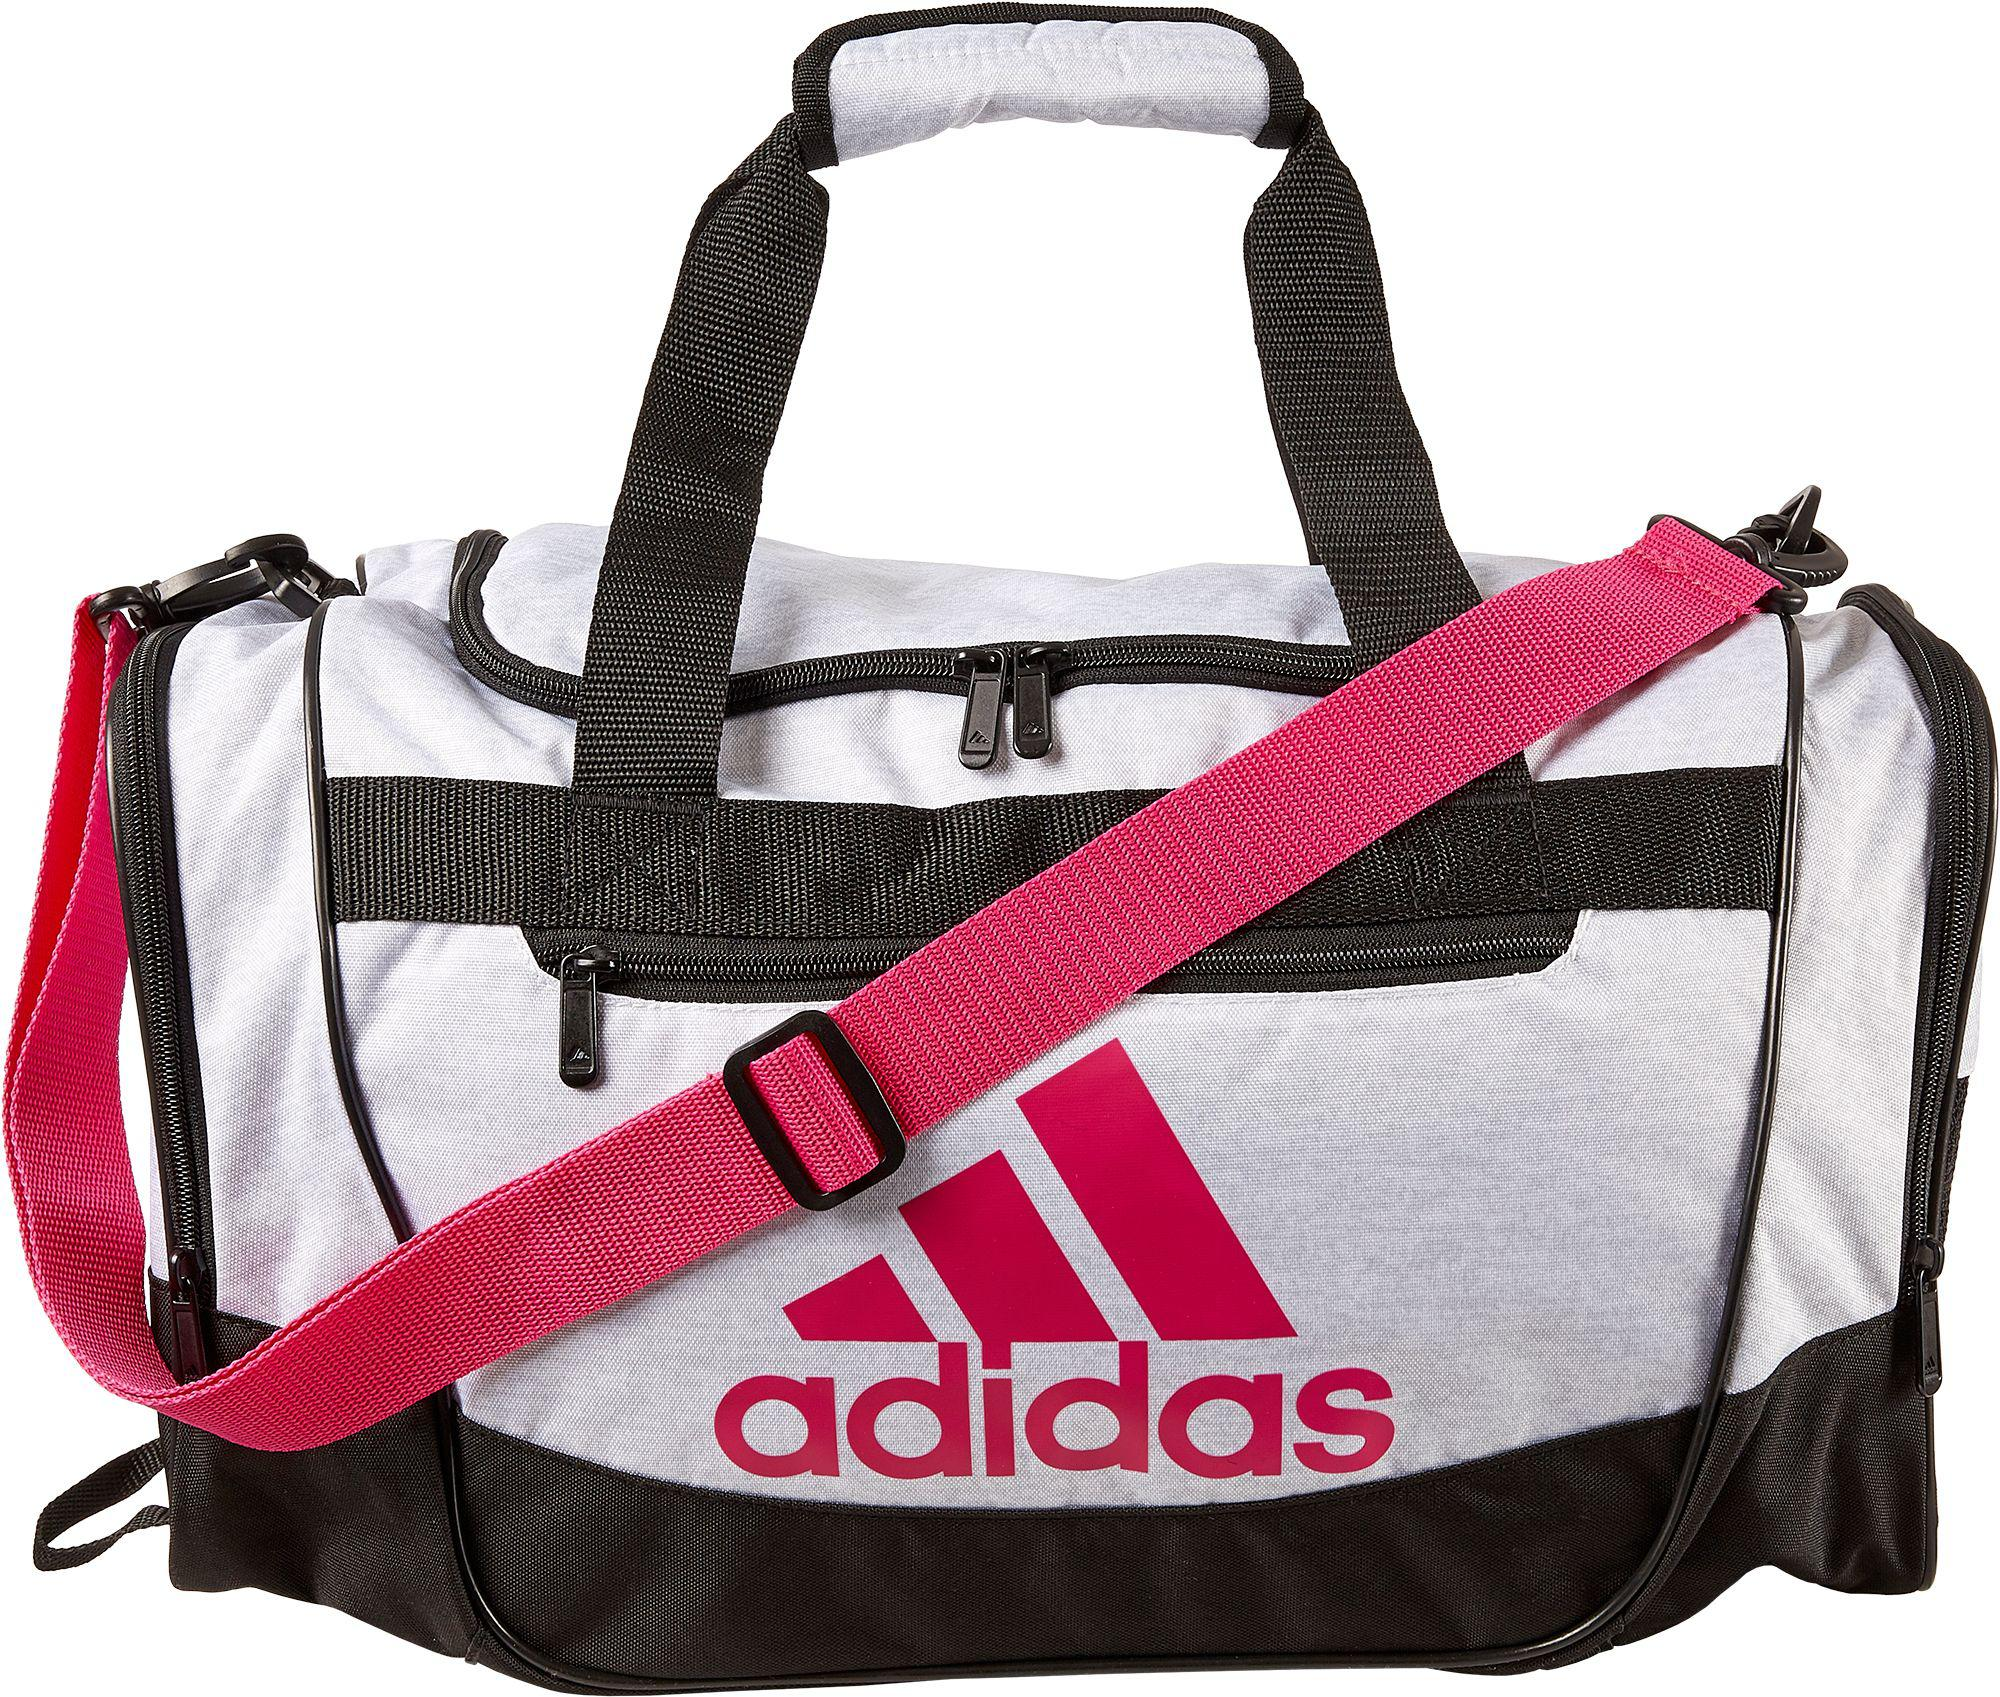 Adidas - White Defender Iii Small Duffle Bag for Men - Lyst. View fullscreen 2a08a4aef10d7